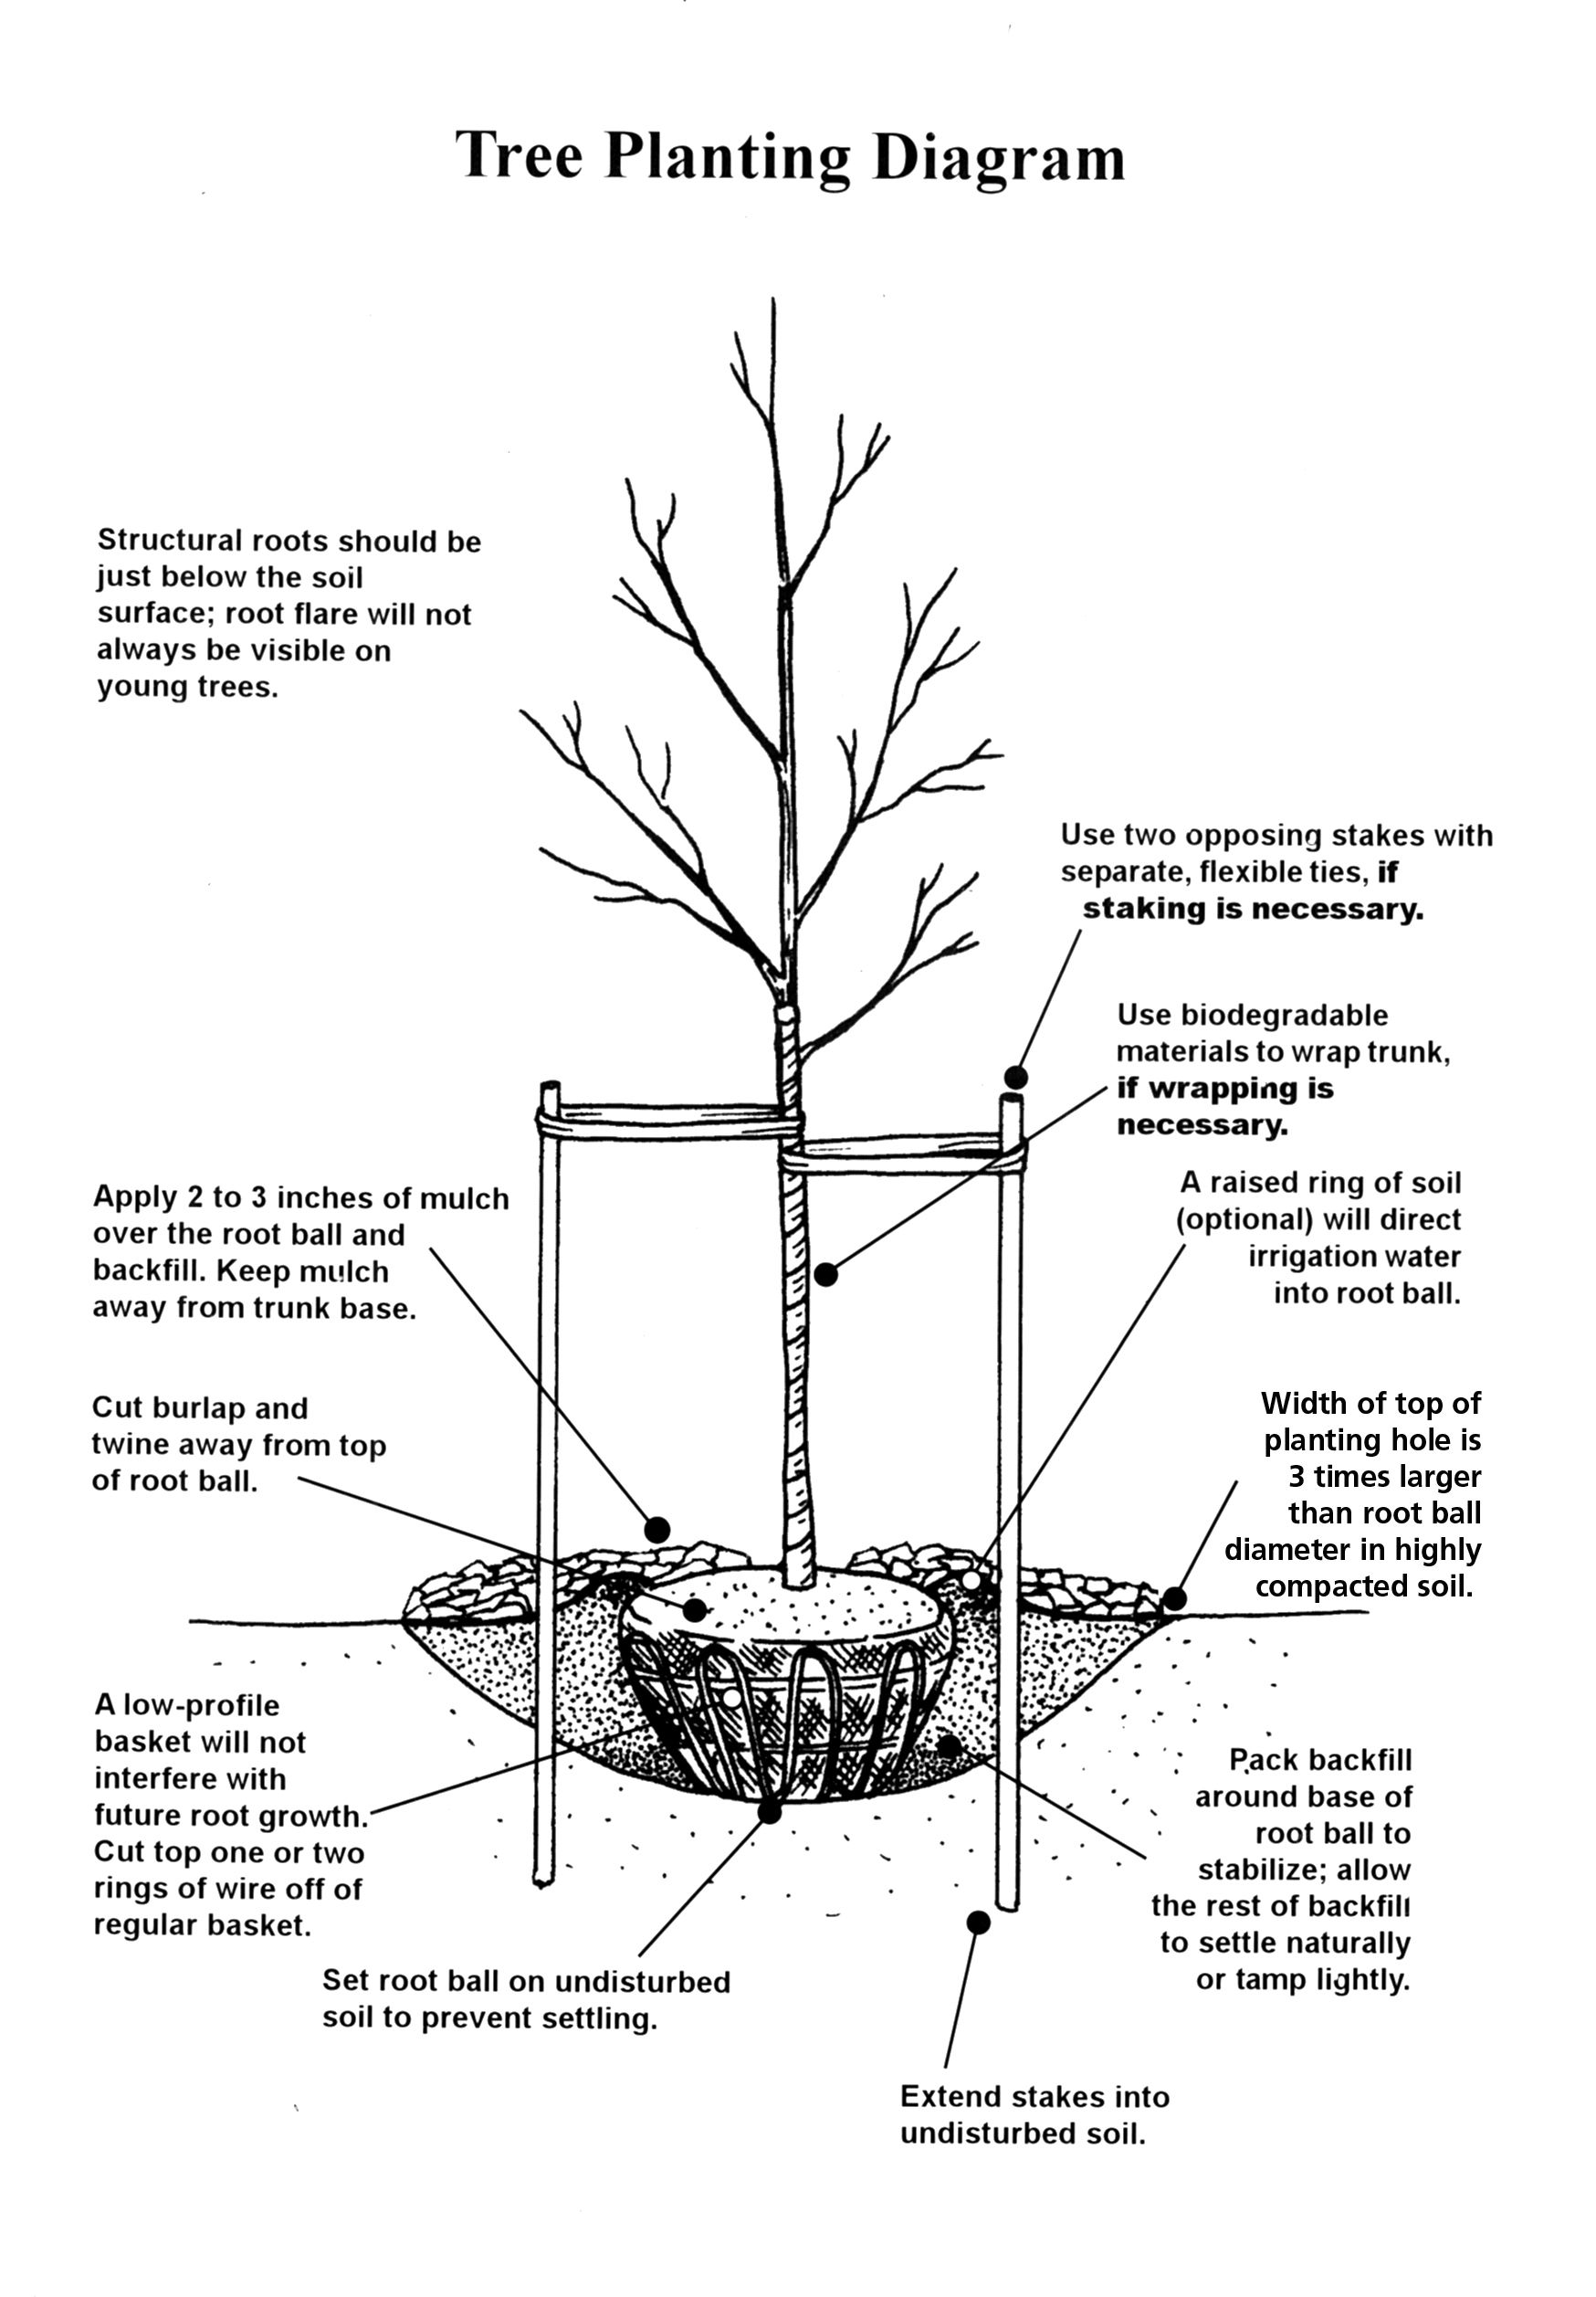 tree planting diagram fruit trees trees to plant tree planting house yard  [ 1748 x 2515 Pixel ]